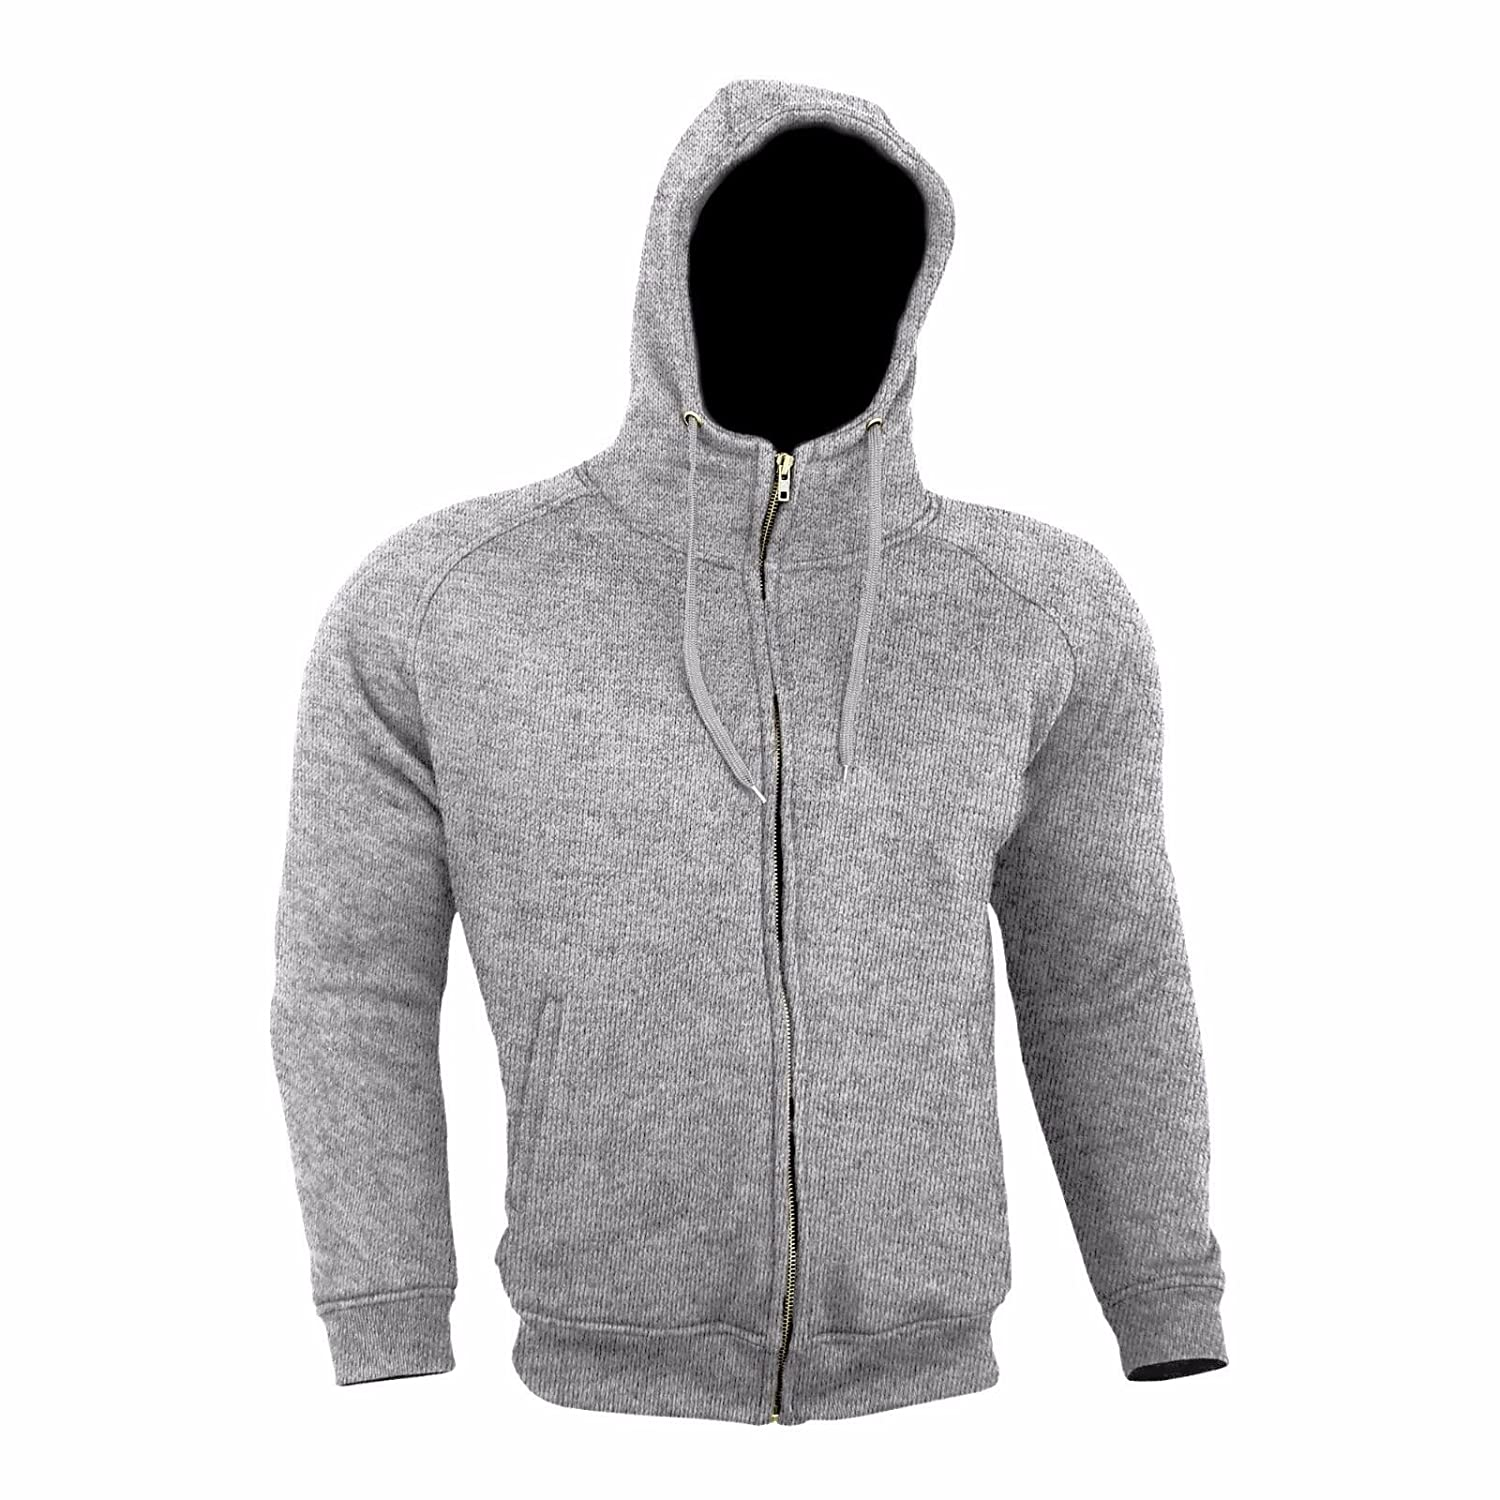 Light Grey Armoured Hoodie Motorcycle Motorbike Summer Hoody Jacket Zip Up Removable Armor Bikers Size = Medium